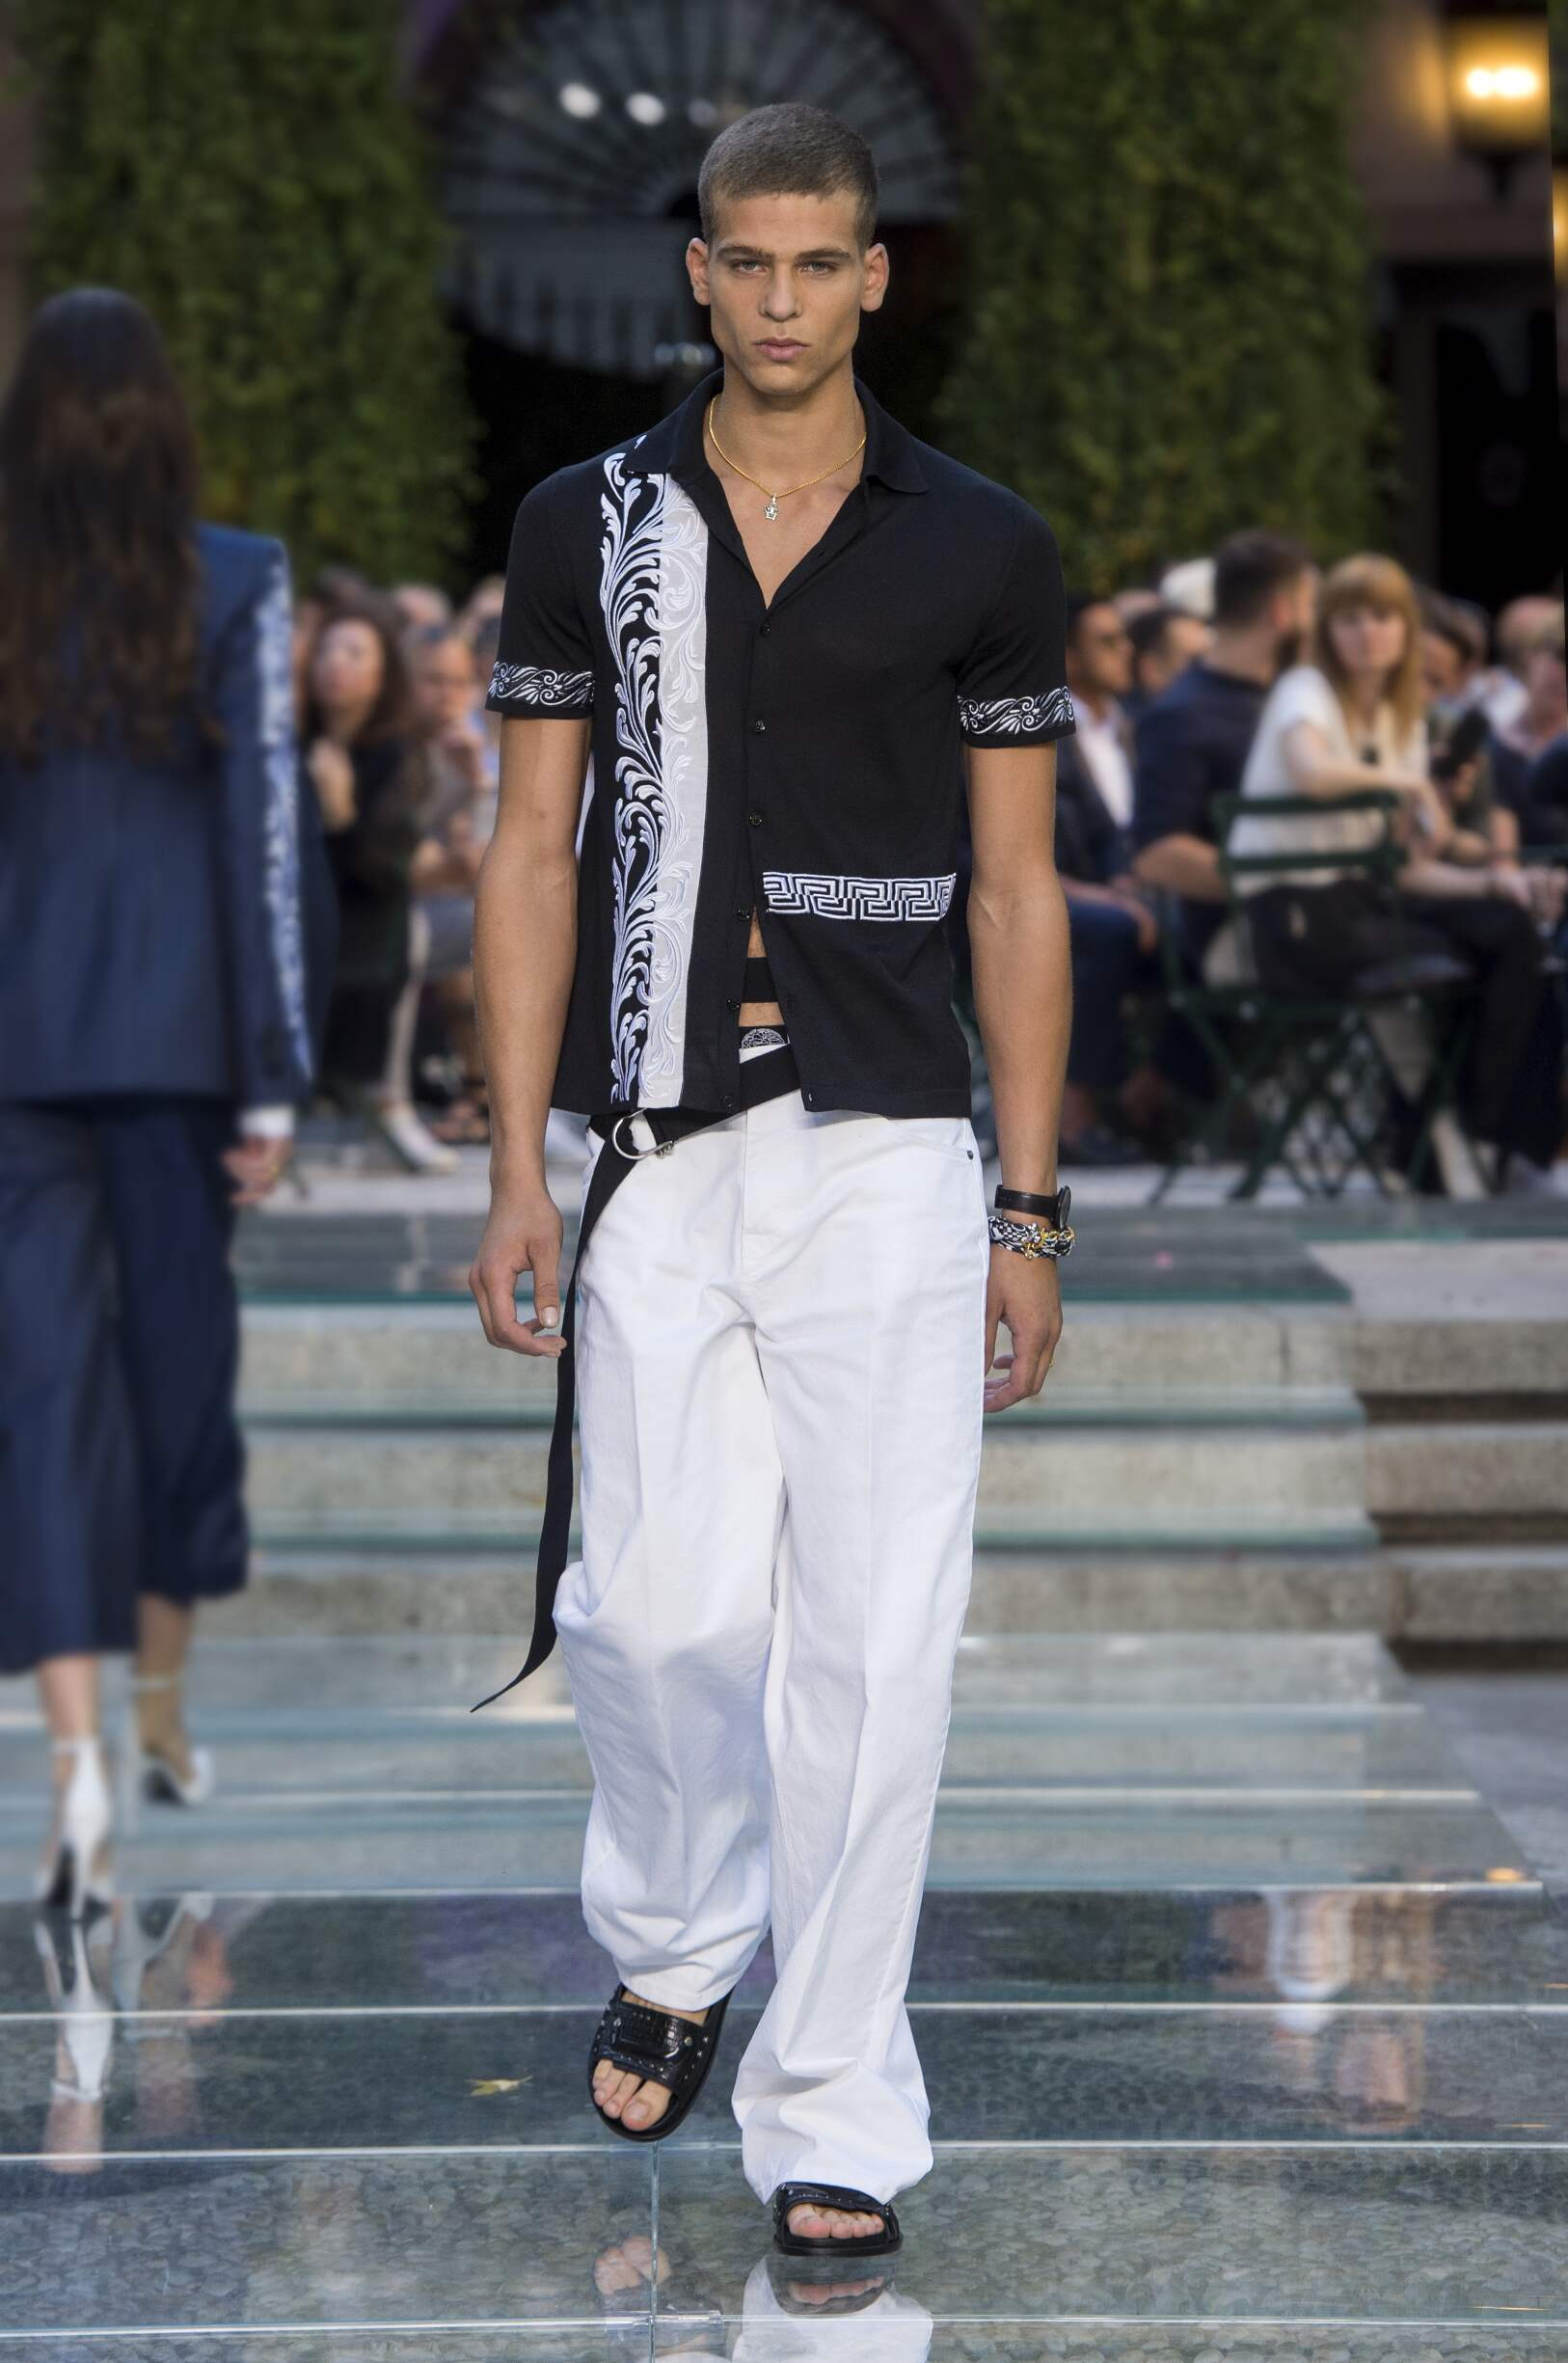 VERSACE SPRING SUMMER 2018 MEN'S COLLECTION